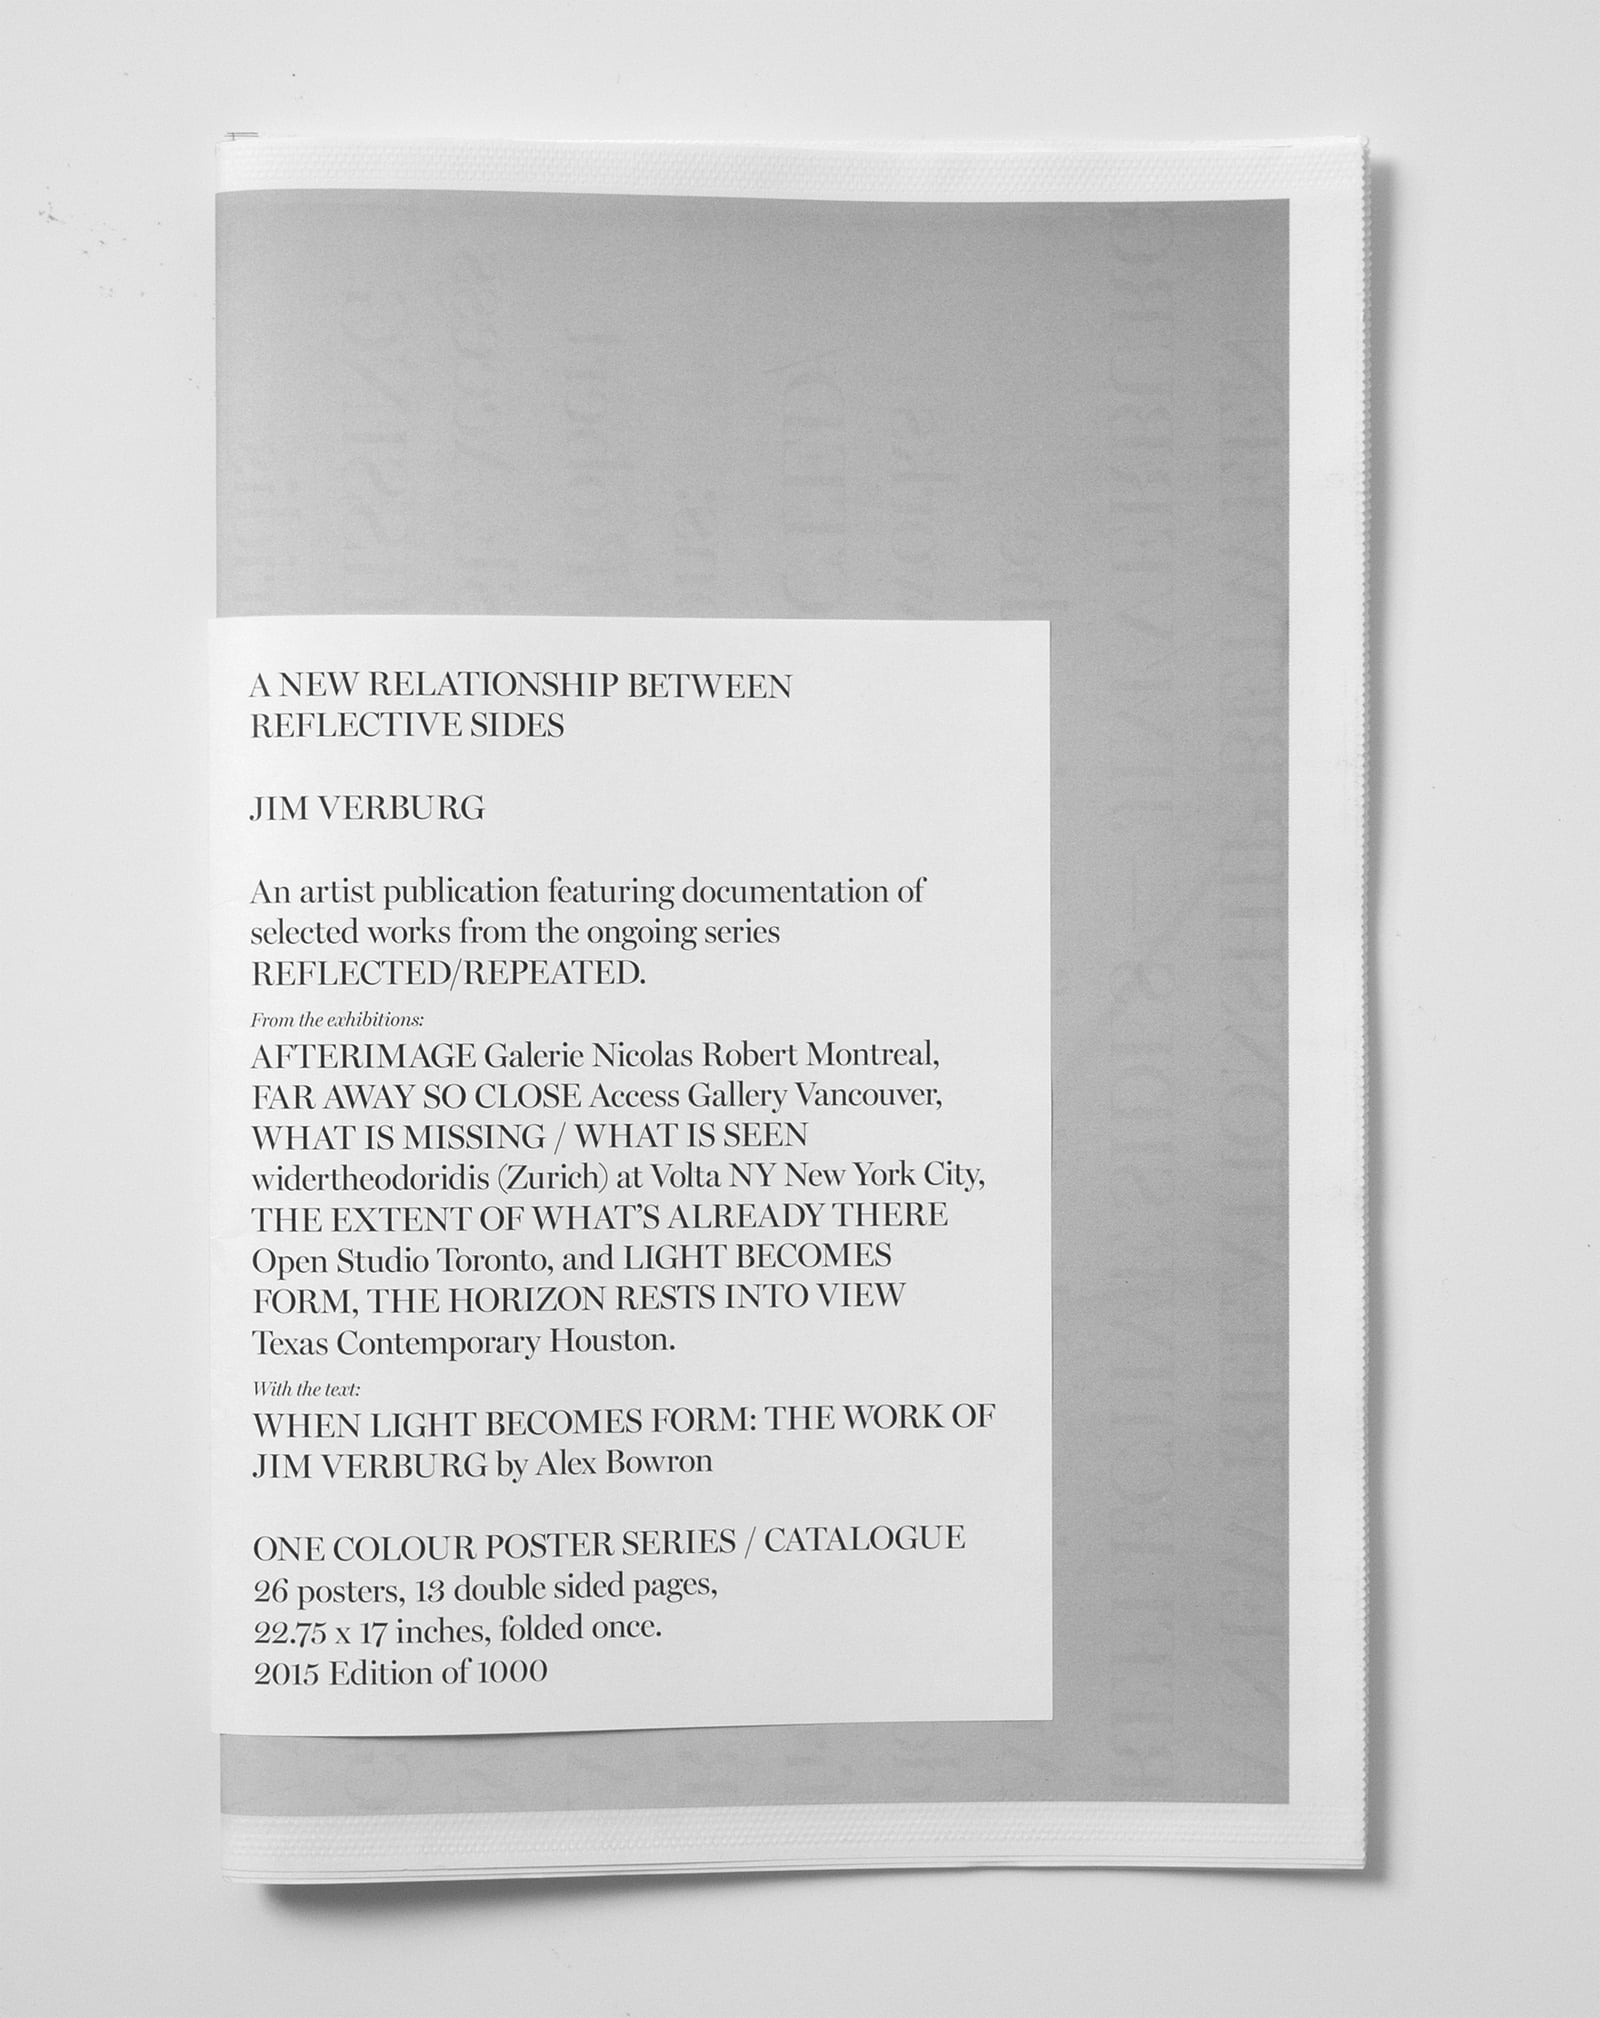 A New Relationship Between Reflective Sides  a one colour poster series/catalogue